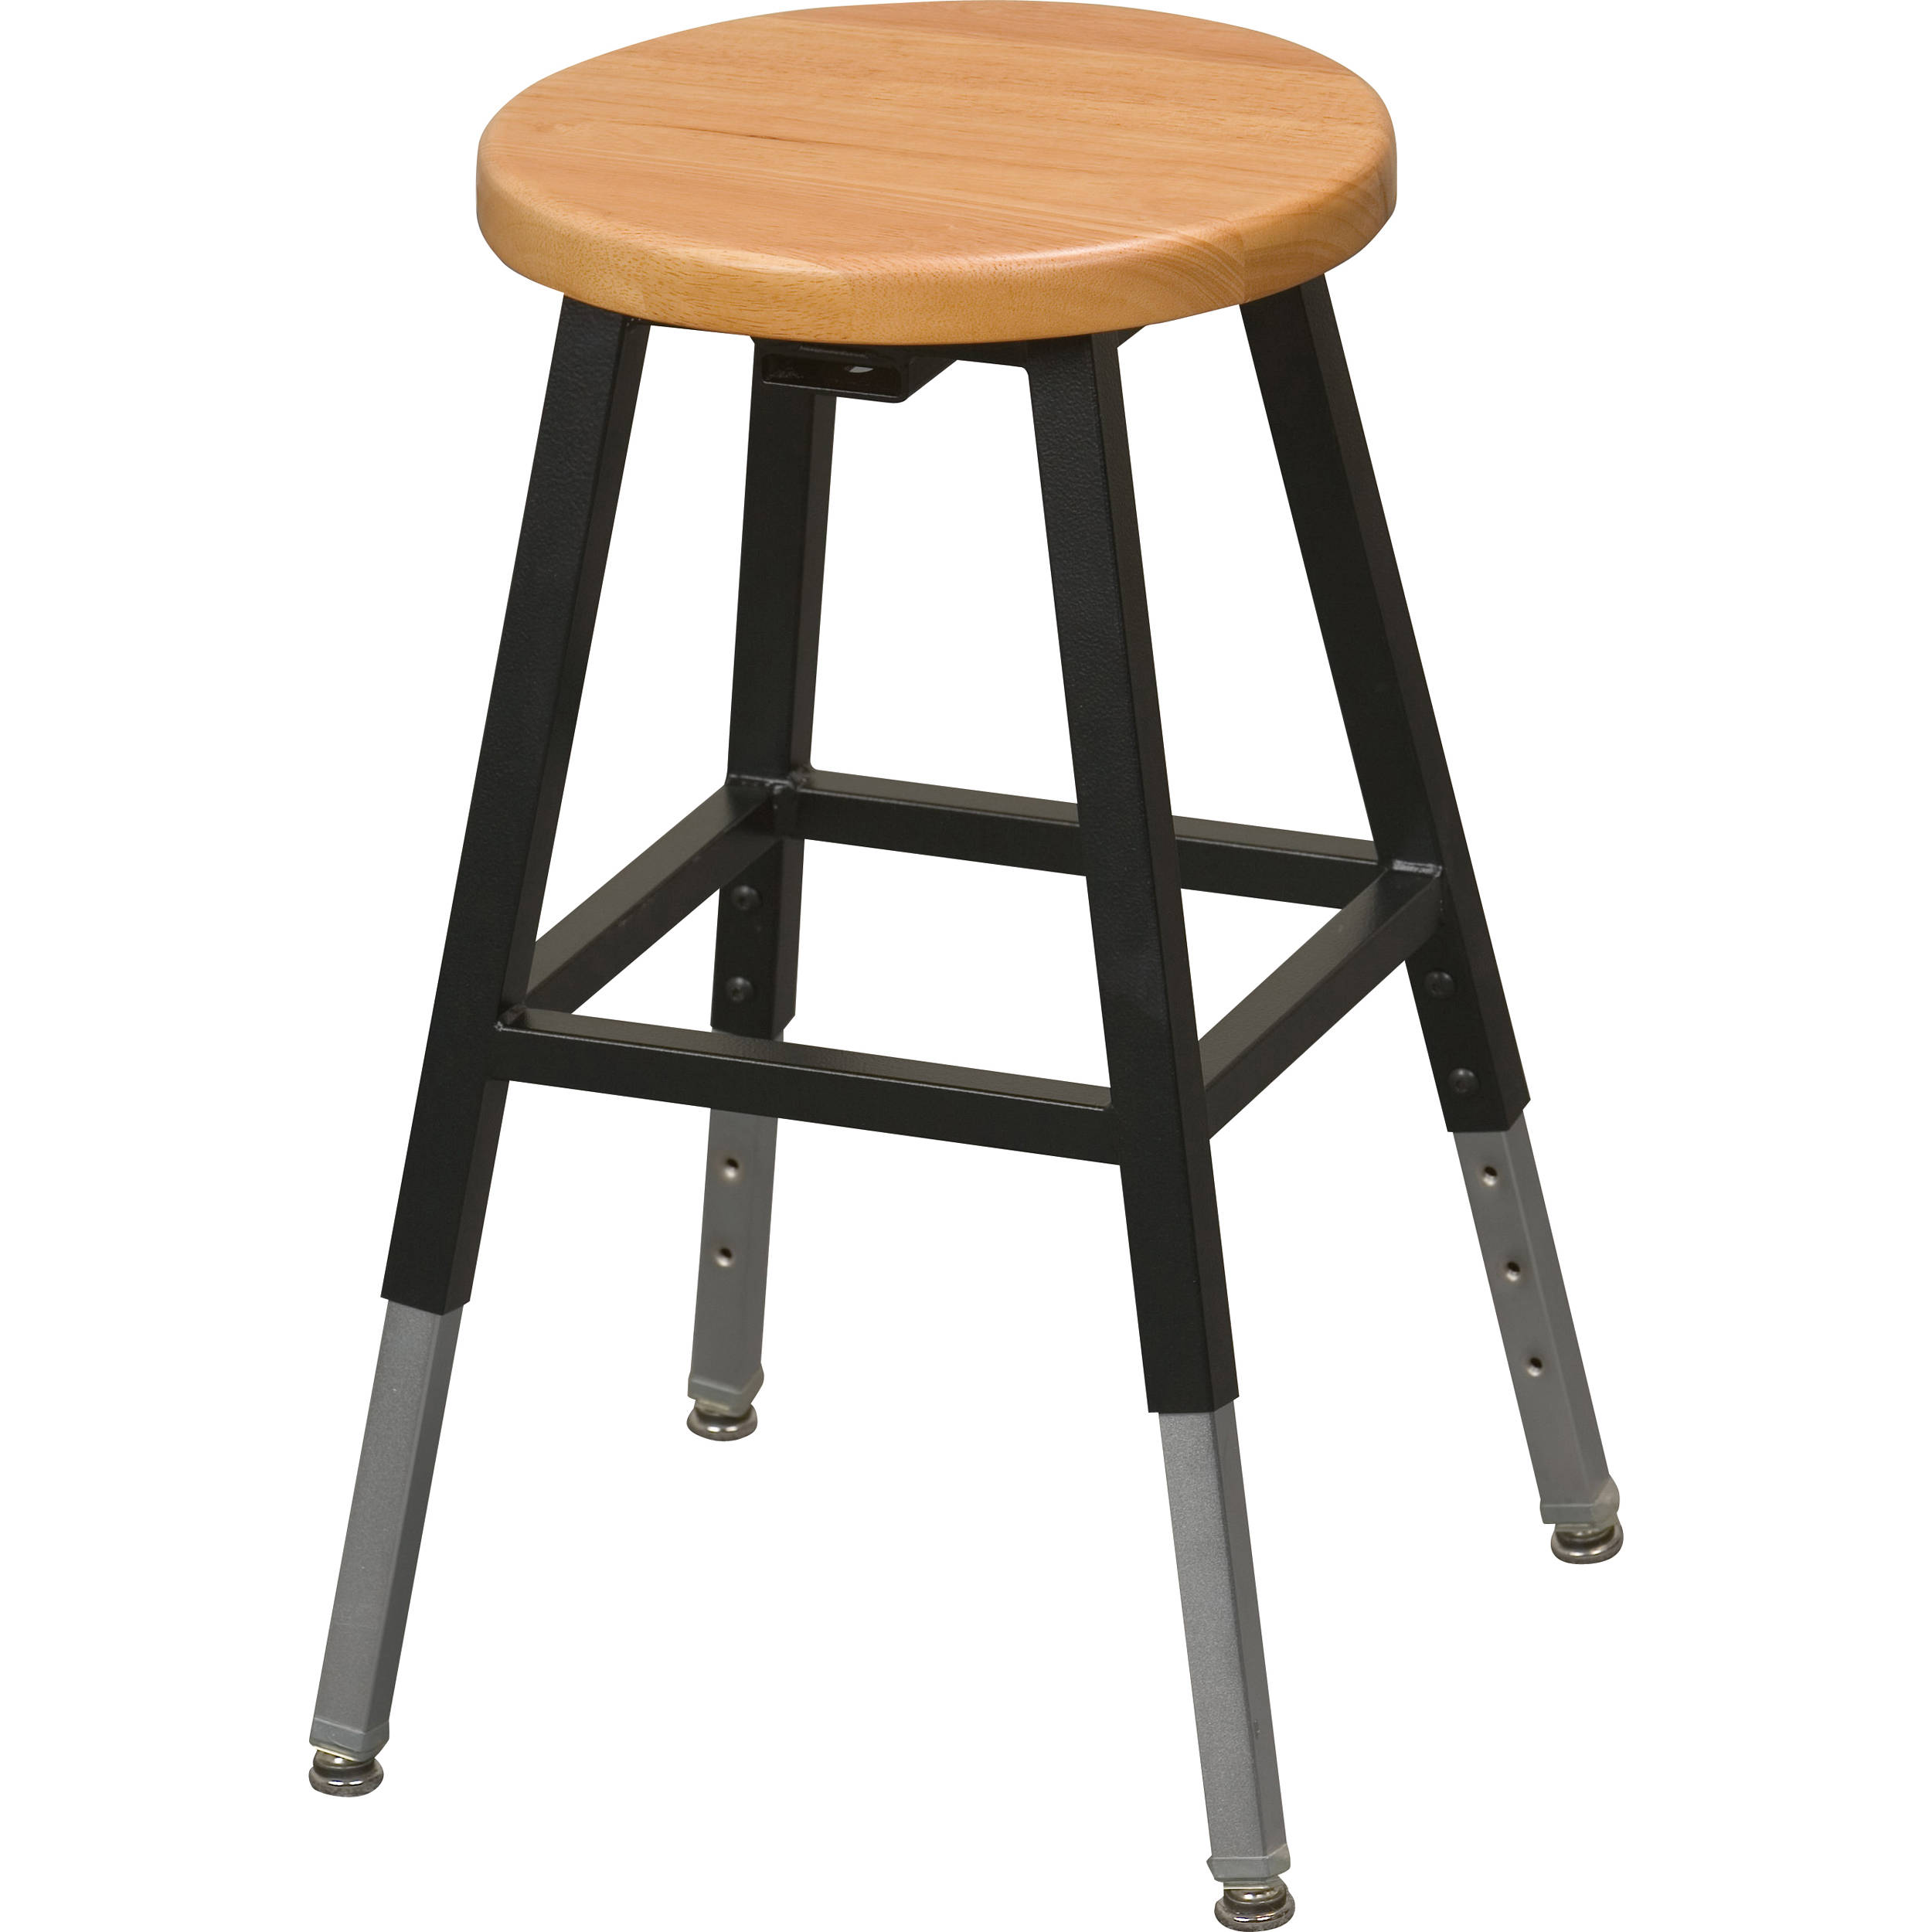 Balt 34441R Adjustable Height Lab Stool Without Back (Black)